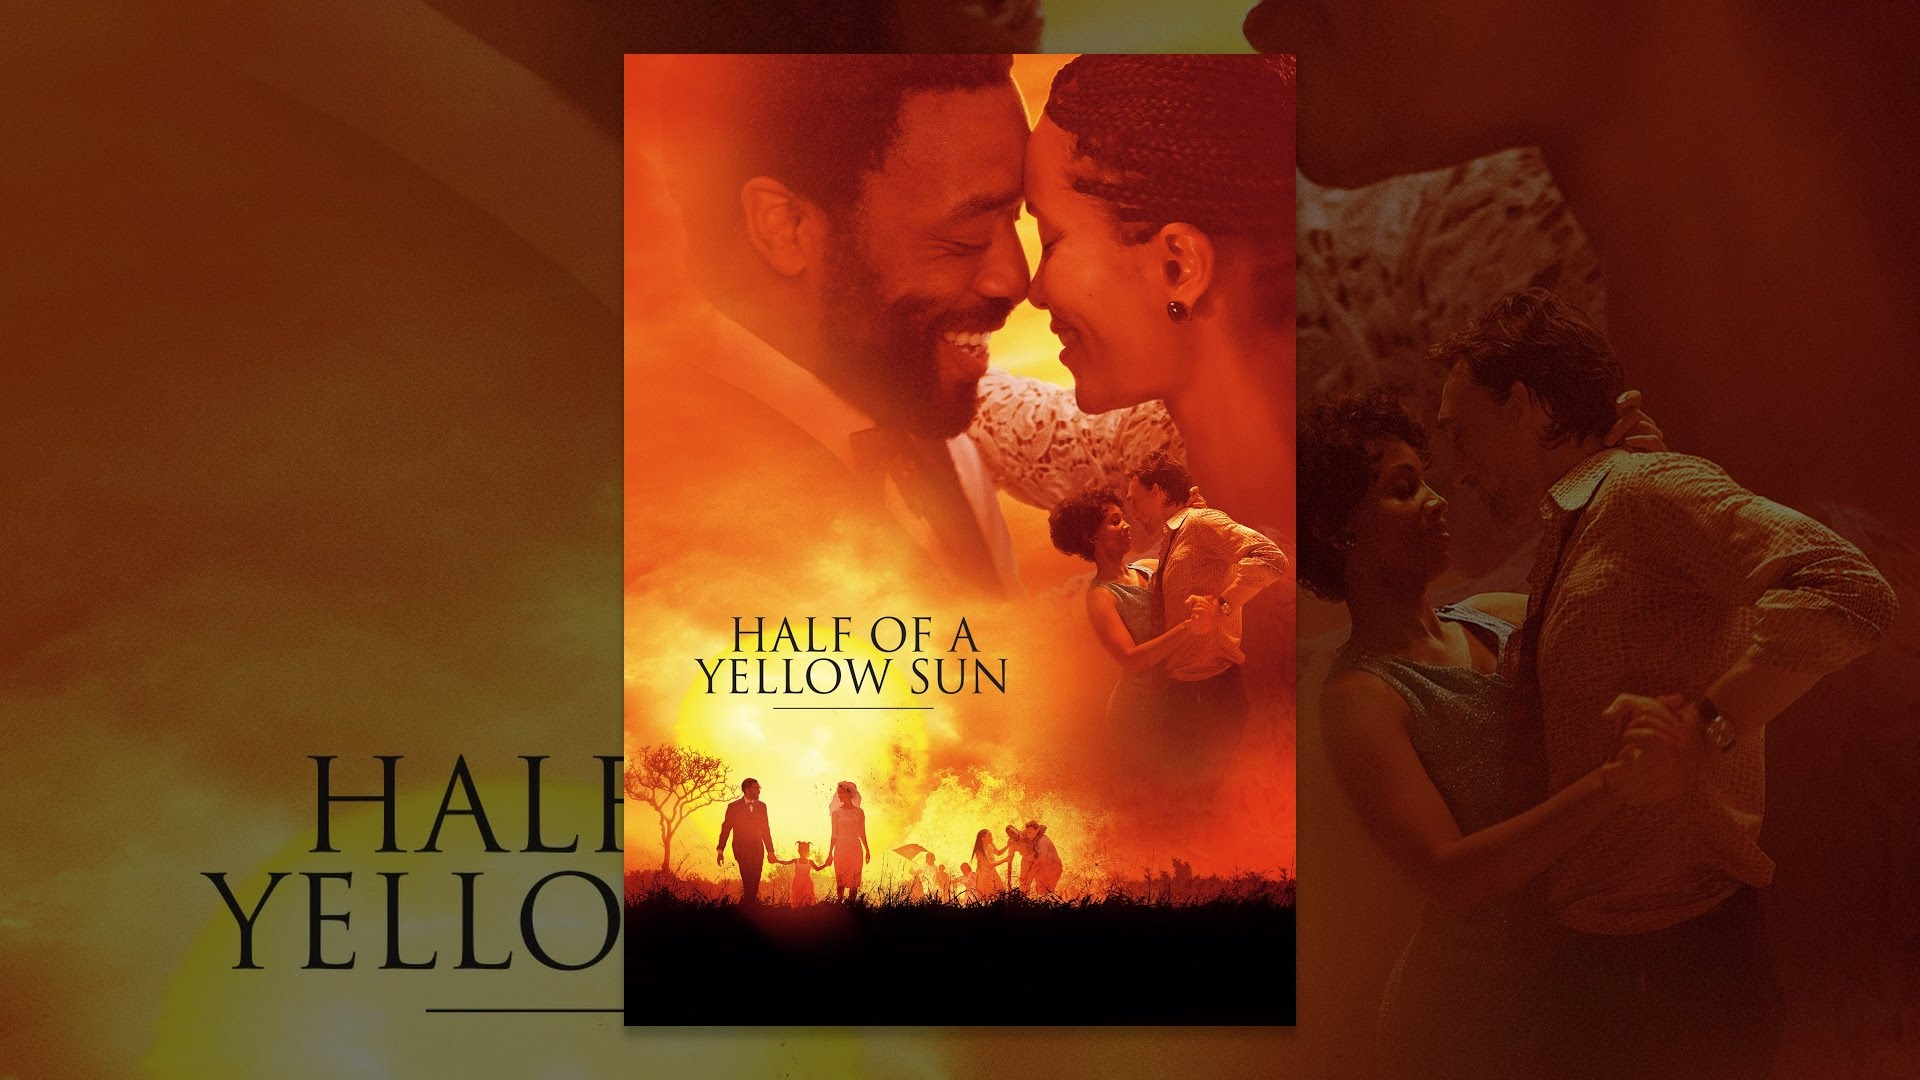 half of a yellow sun odenigbo Half of a yellow sun deals with political and historical events but it is also deeply personal, particularly in the love between its characters the romantic relationships between olanna and odenigbo, kainene and richard, and ugwu's infatuation with eberechi are at the center of the novel, as well as the sibling love between olanna and kainene.